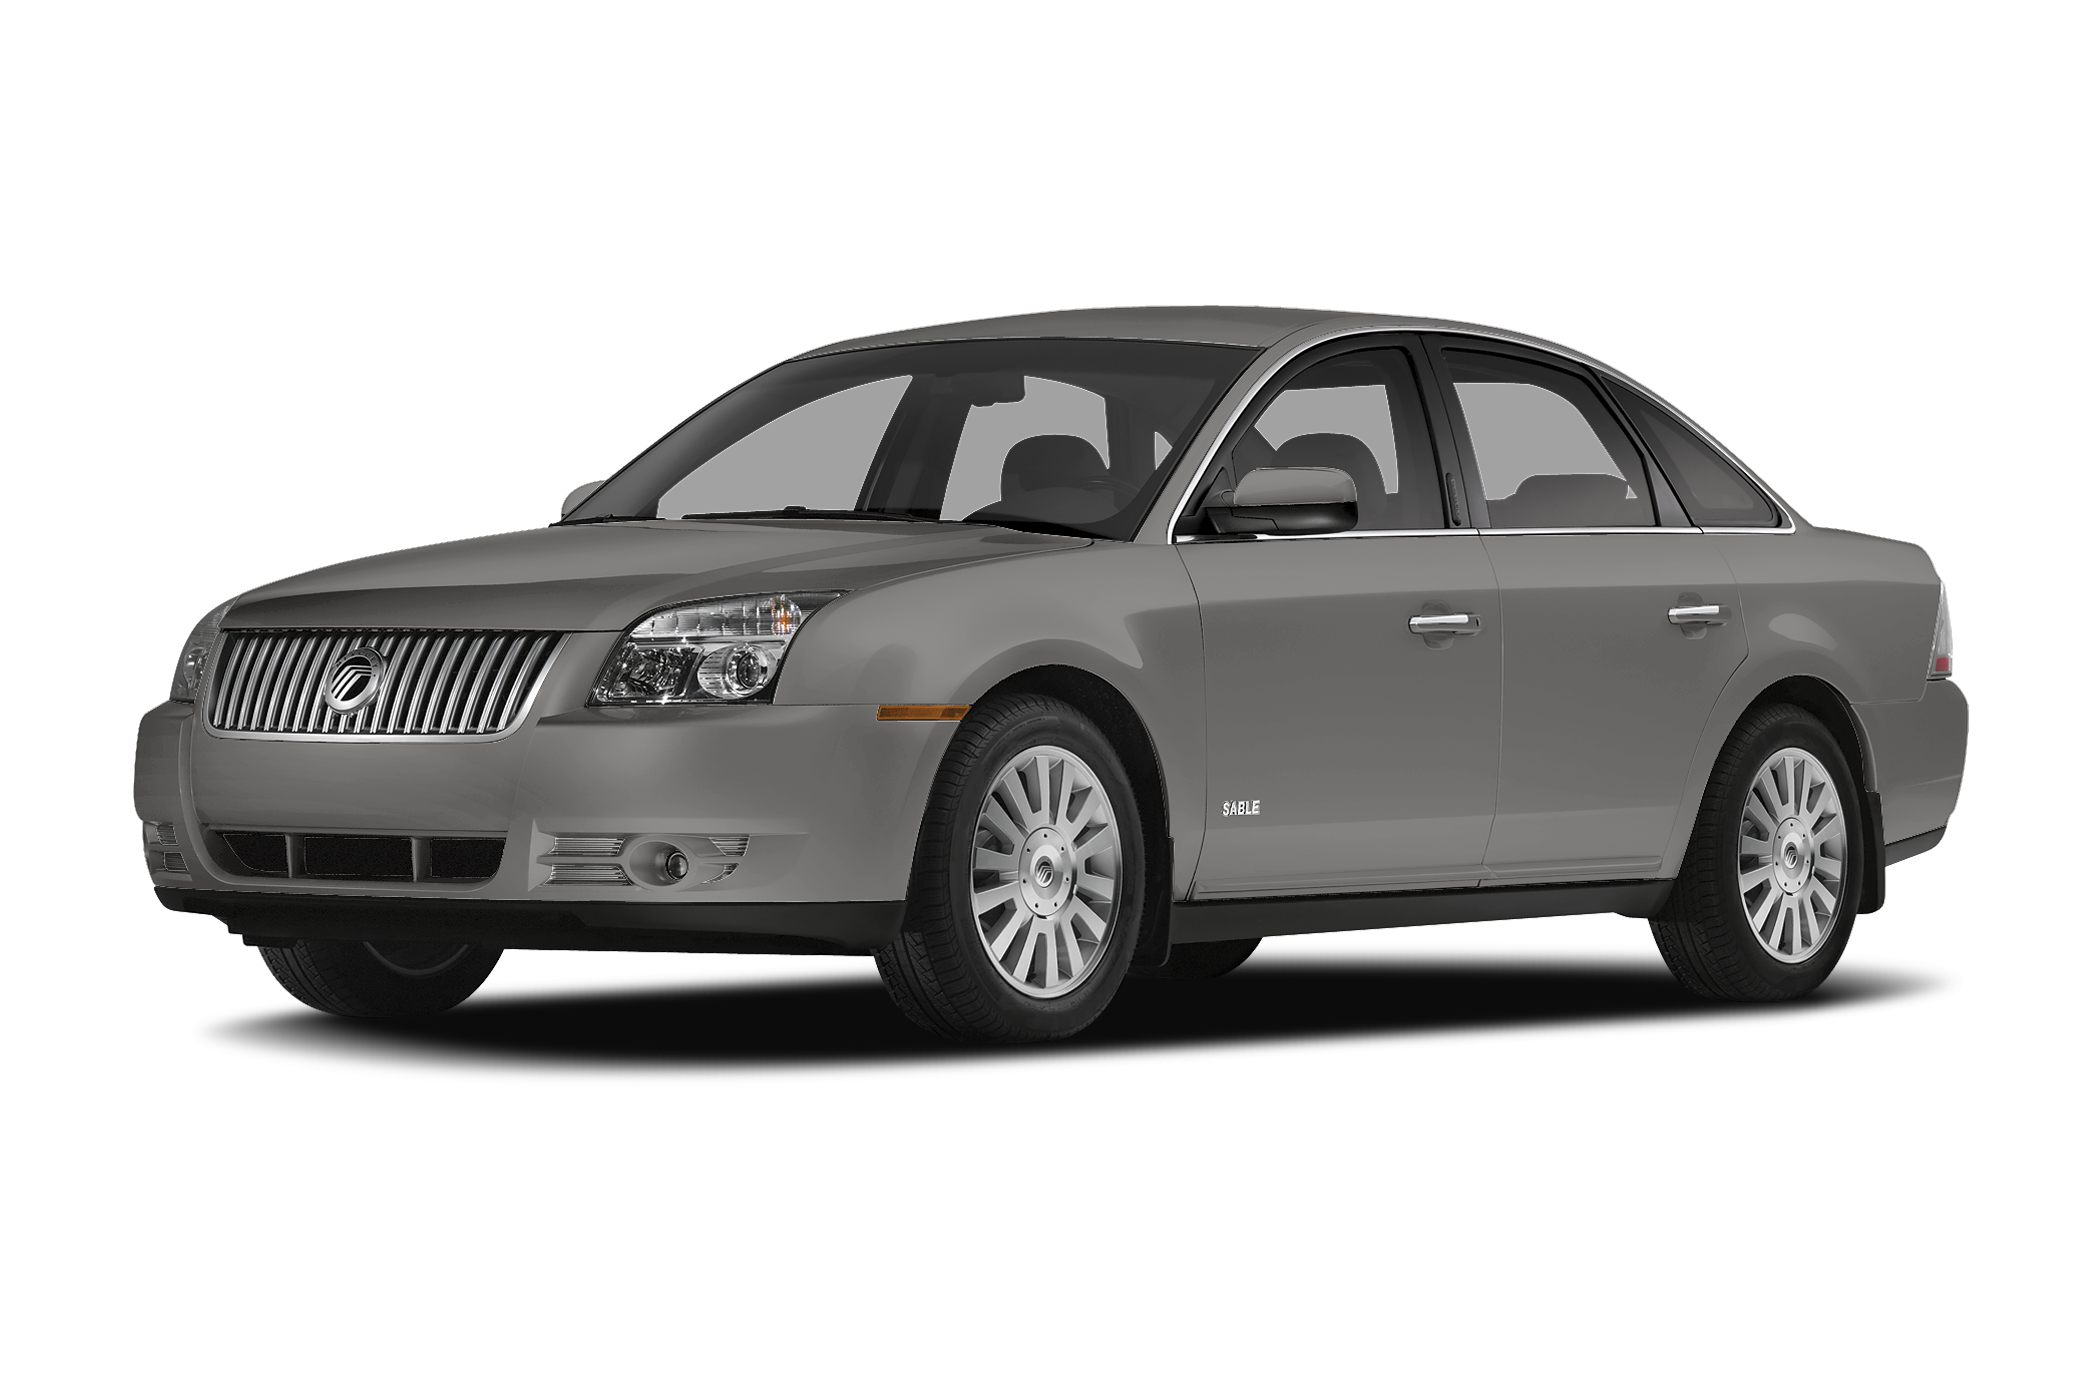 2008 Mercury Sable Sedan for sale in Florence for $6,999 with 172,166 miles